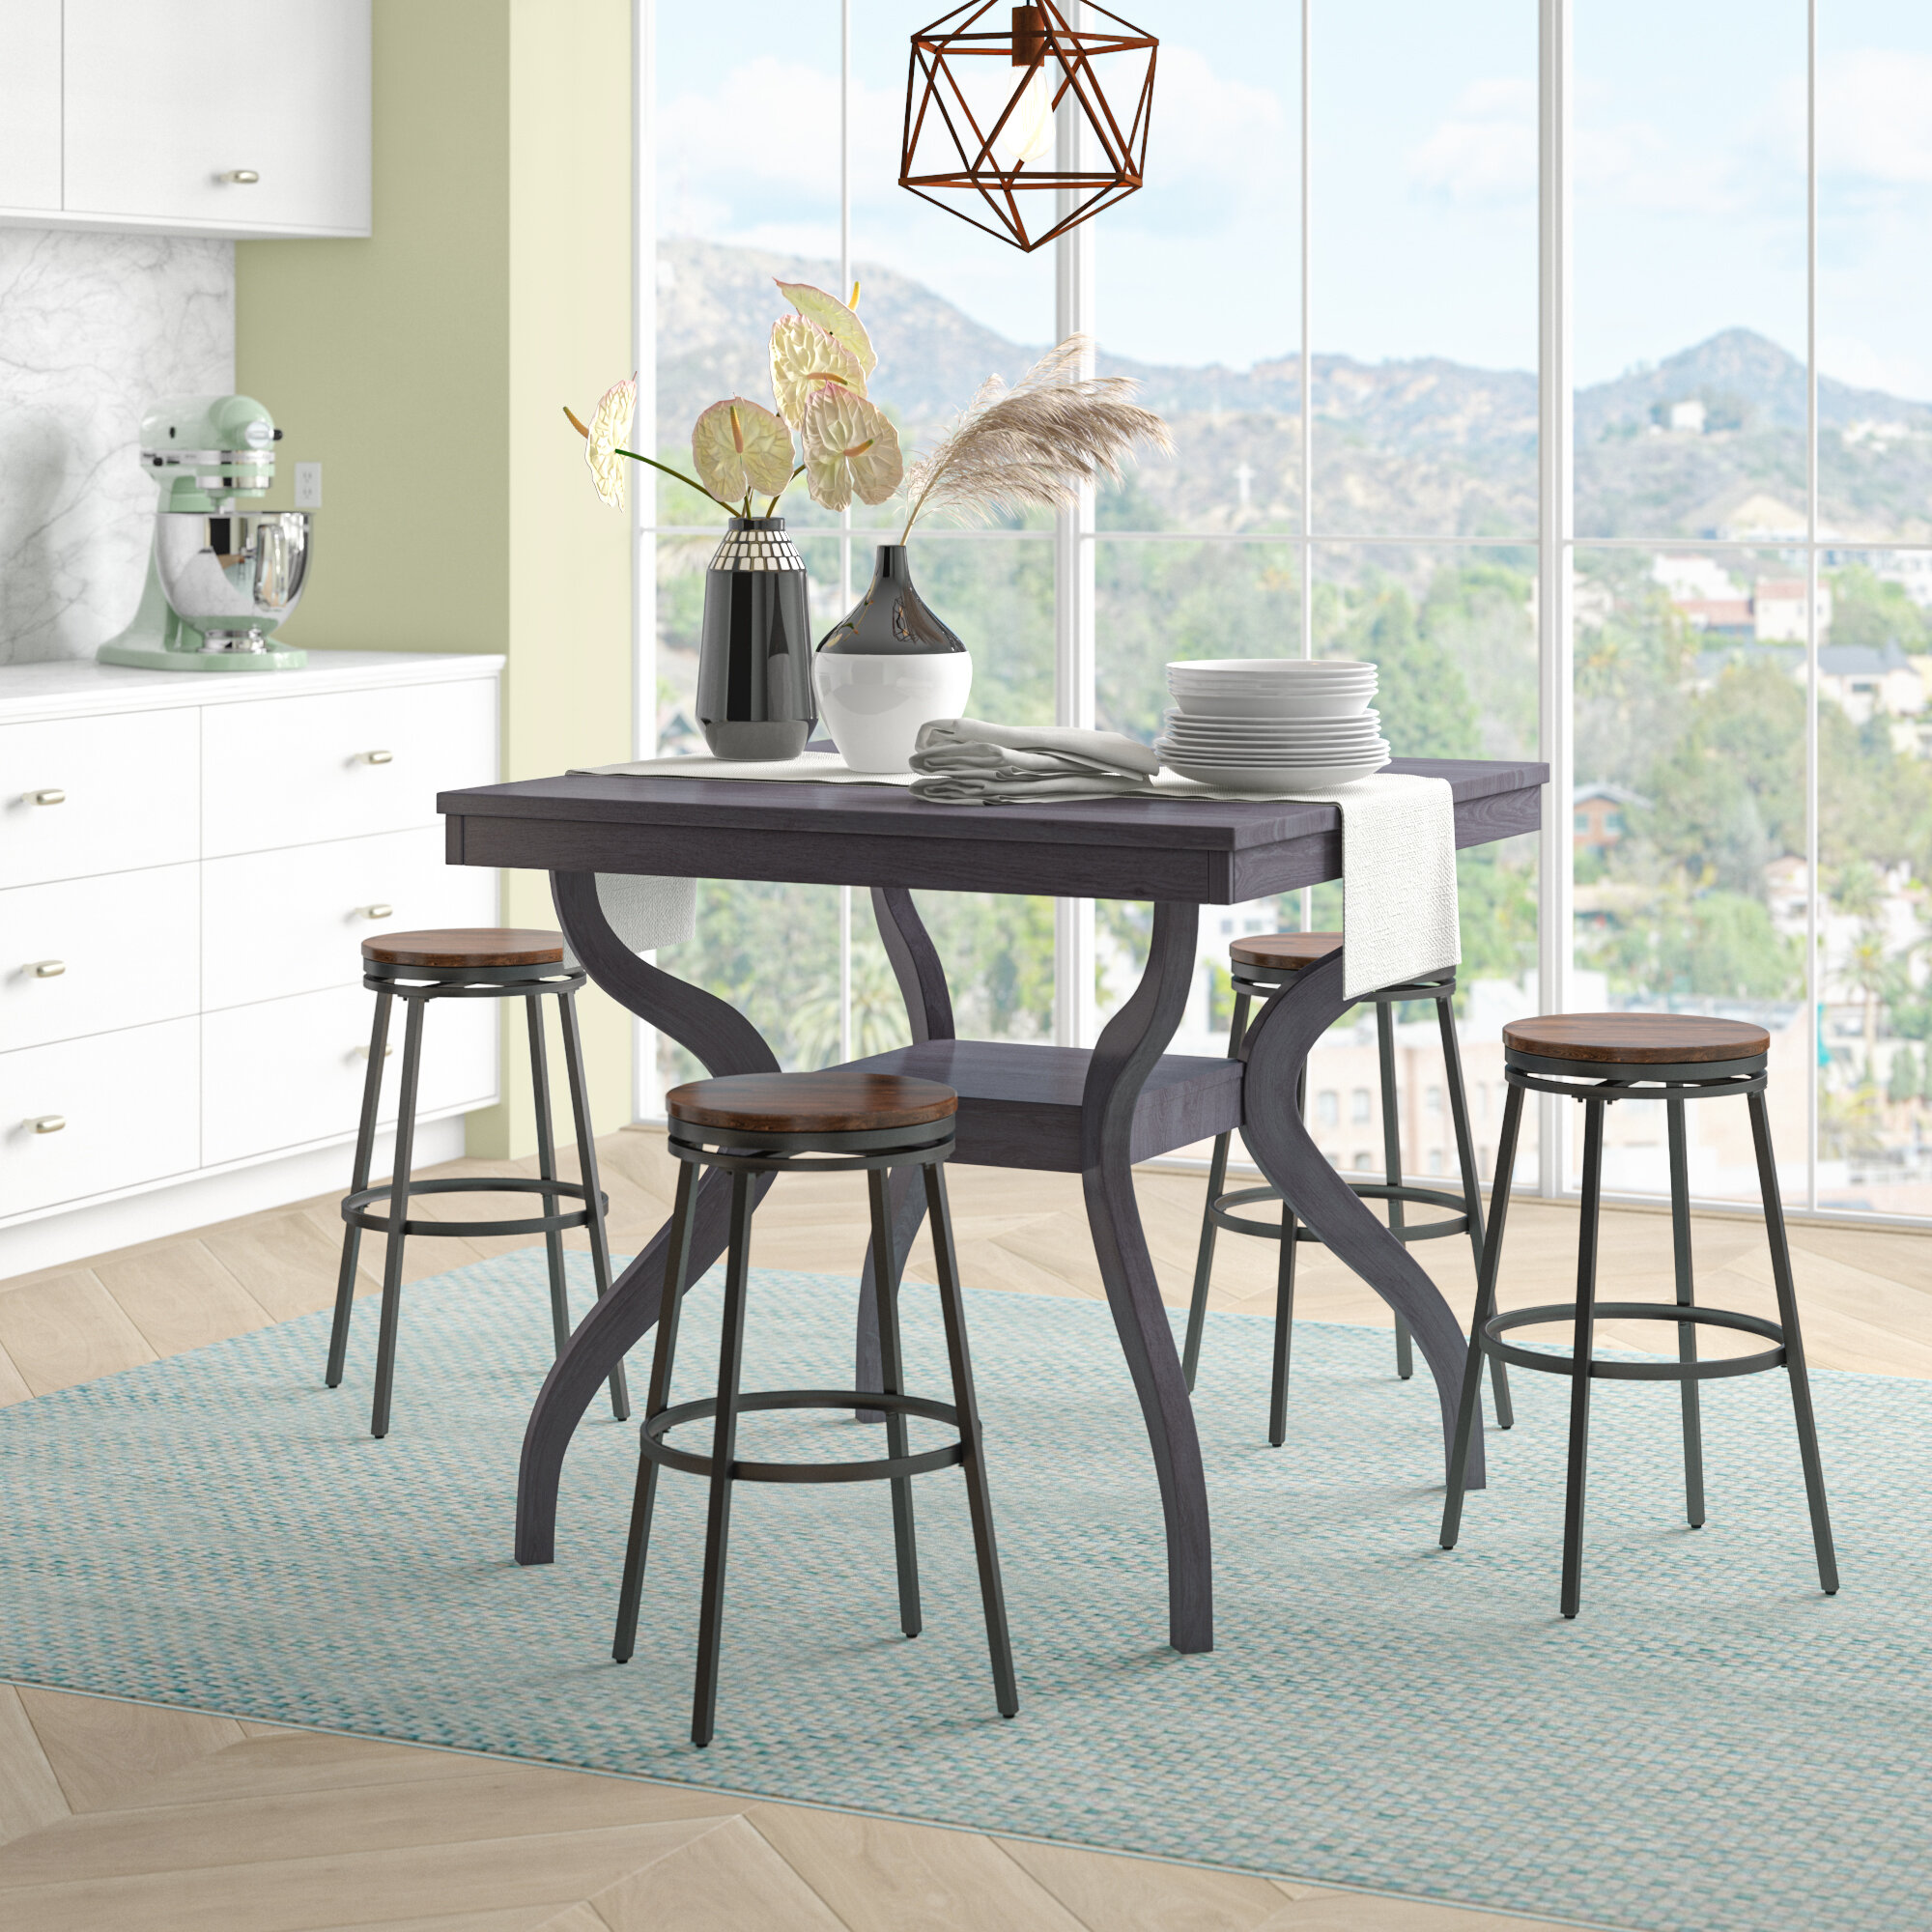 Darby Home Co Newton Counter Height Dining Table Reviews Wayfair